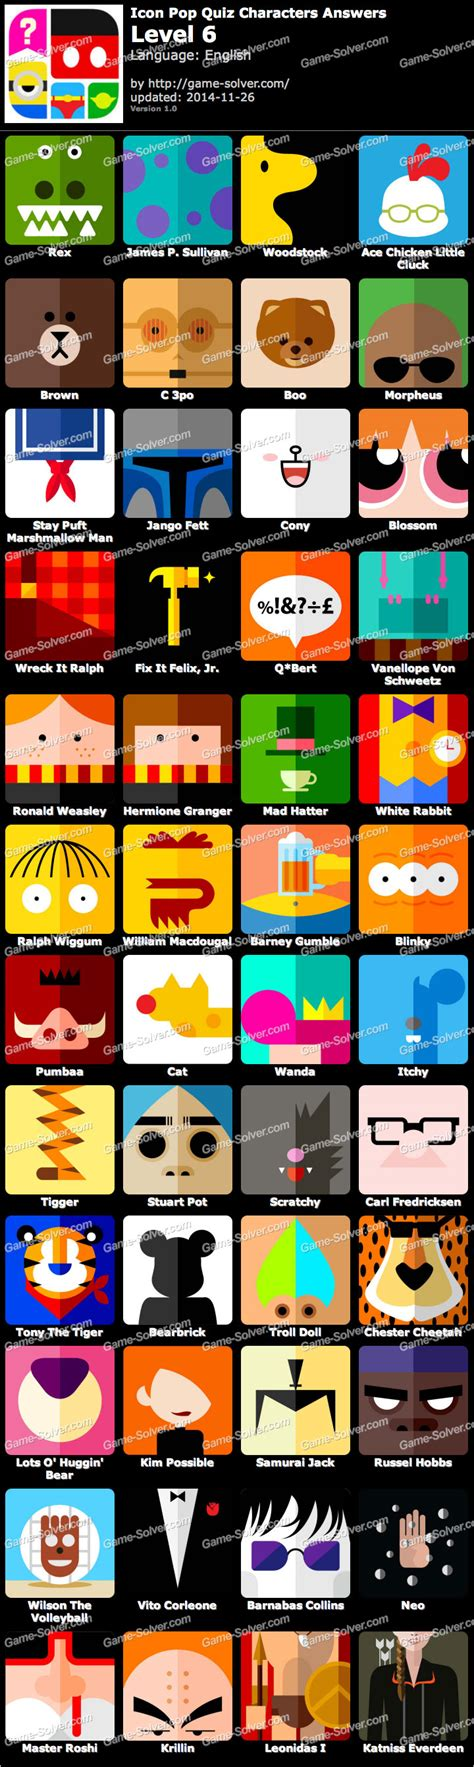 Icon Pop Quiz Characters Level 6 • Game Solver